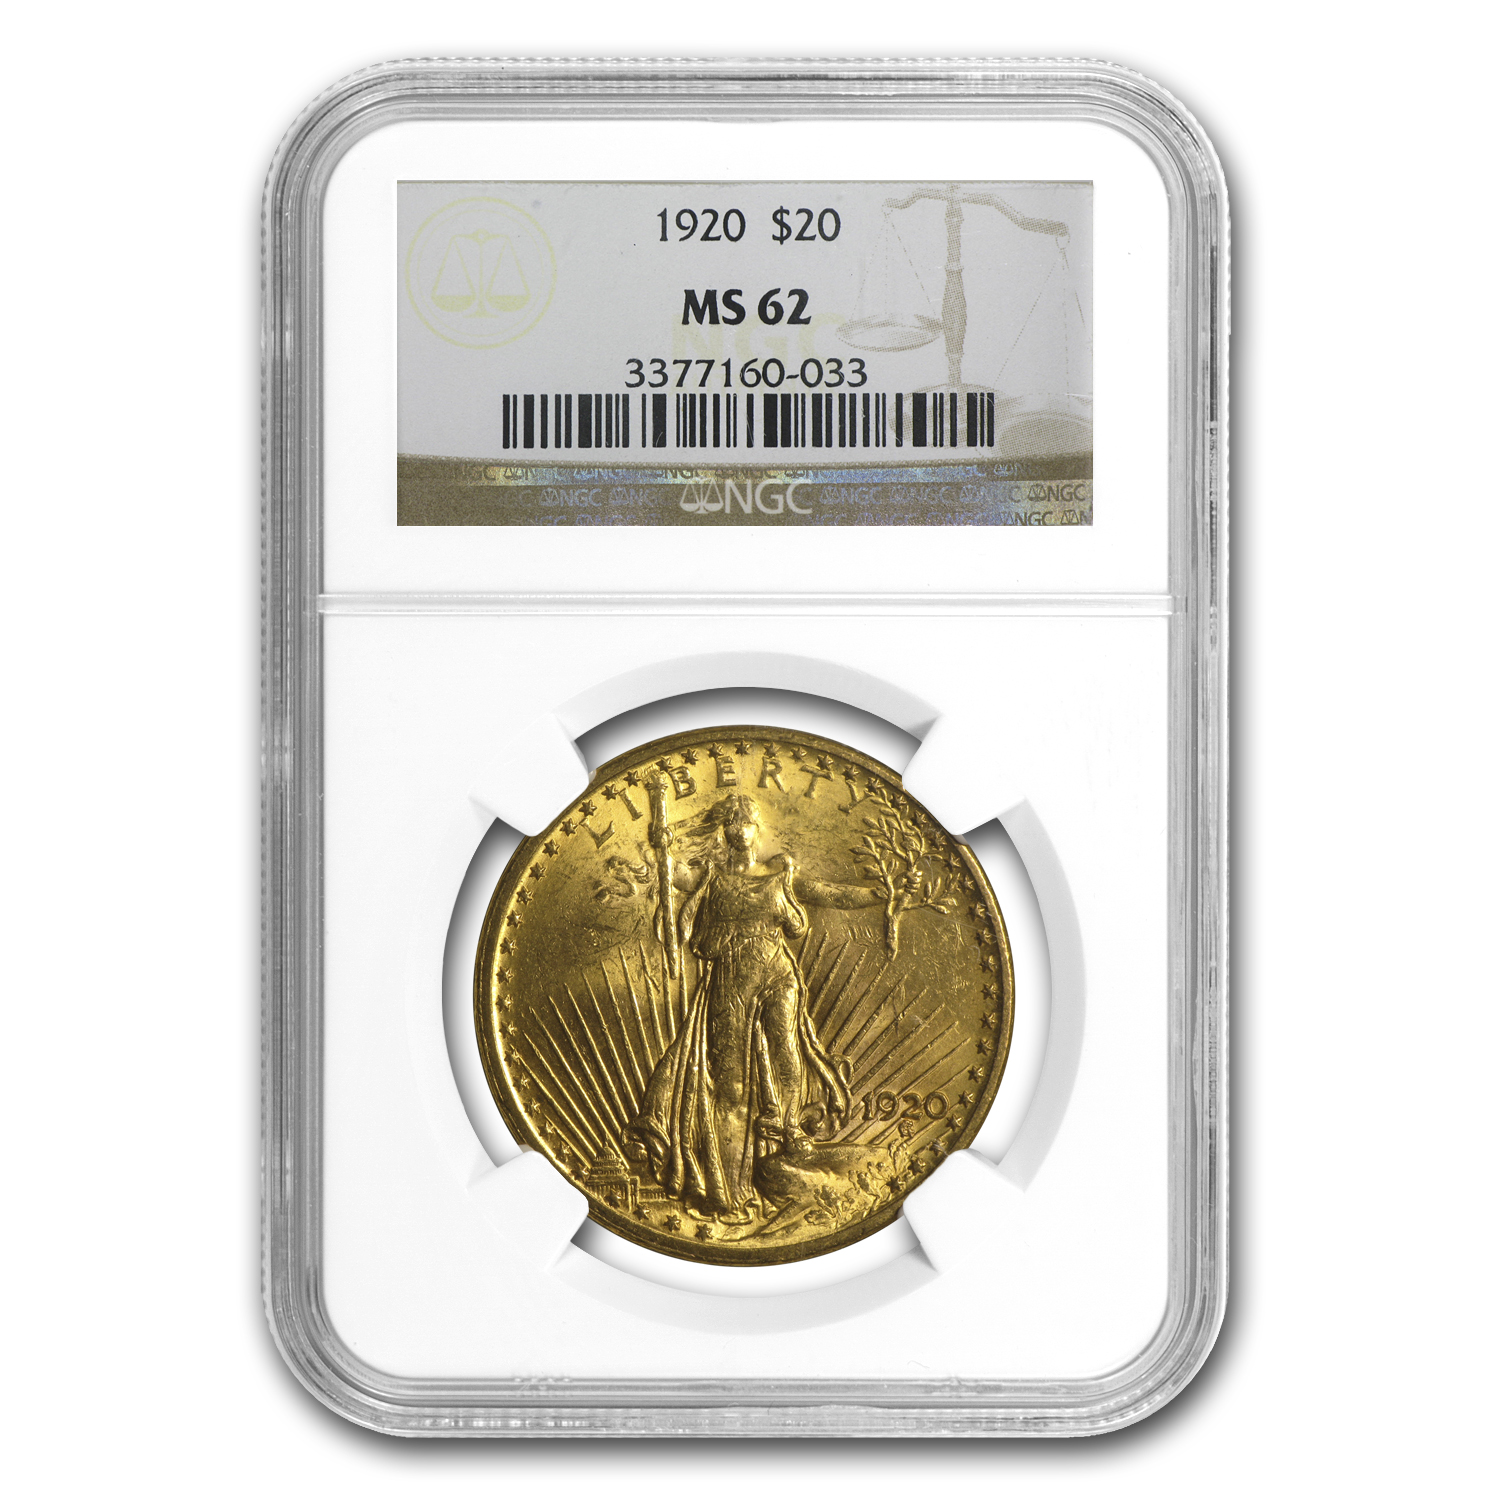 1920 $20 Saint-Gaudens Gold Double Eagle MS-62 NGC